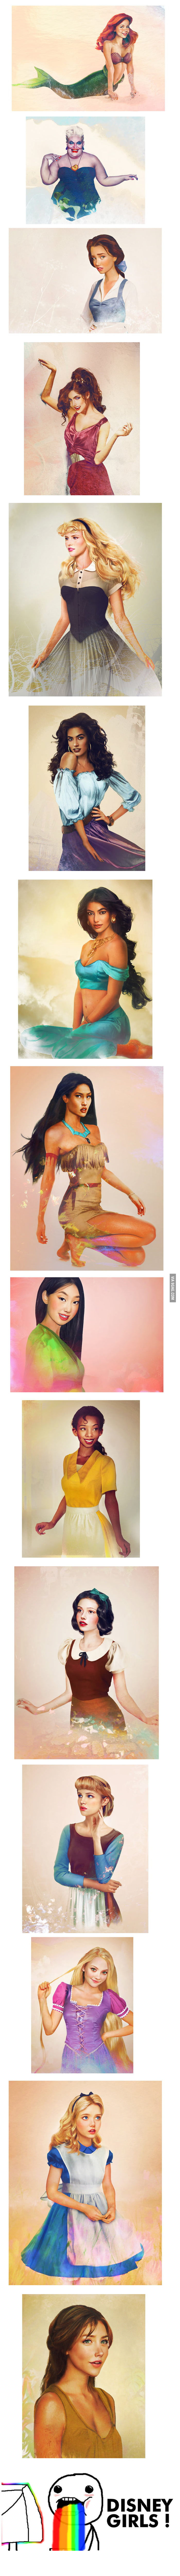 Disney Girls in Real Life !